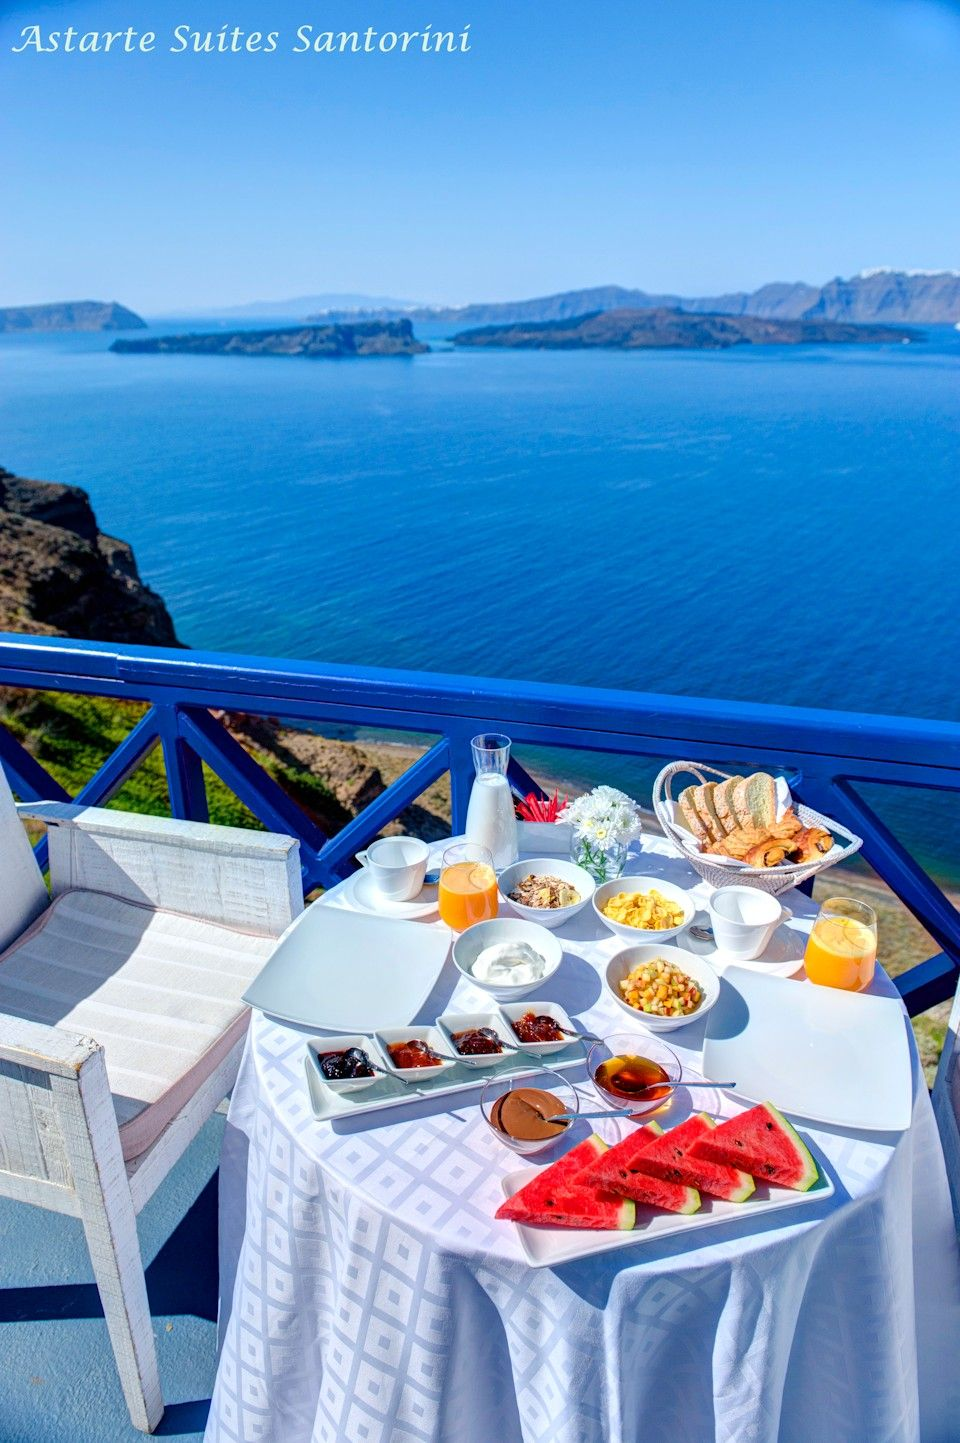 Breakfast served at guests private terrace overlooking sea-volcano-caldera views